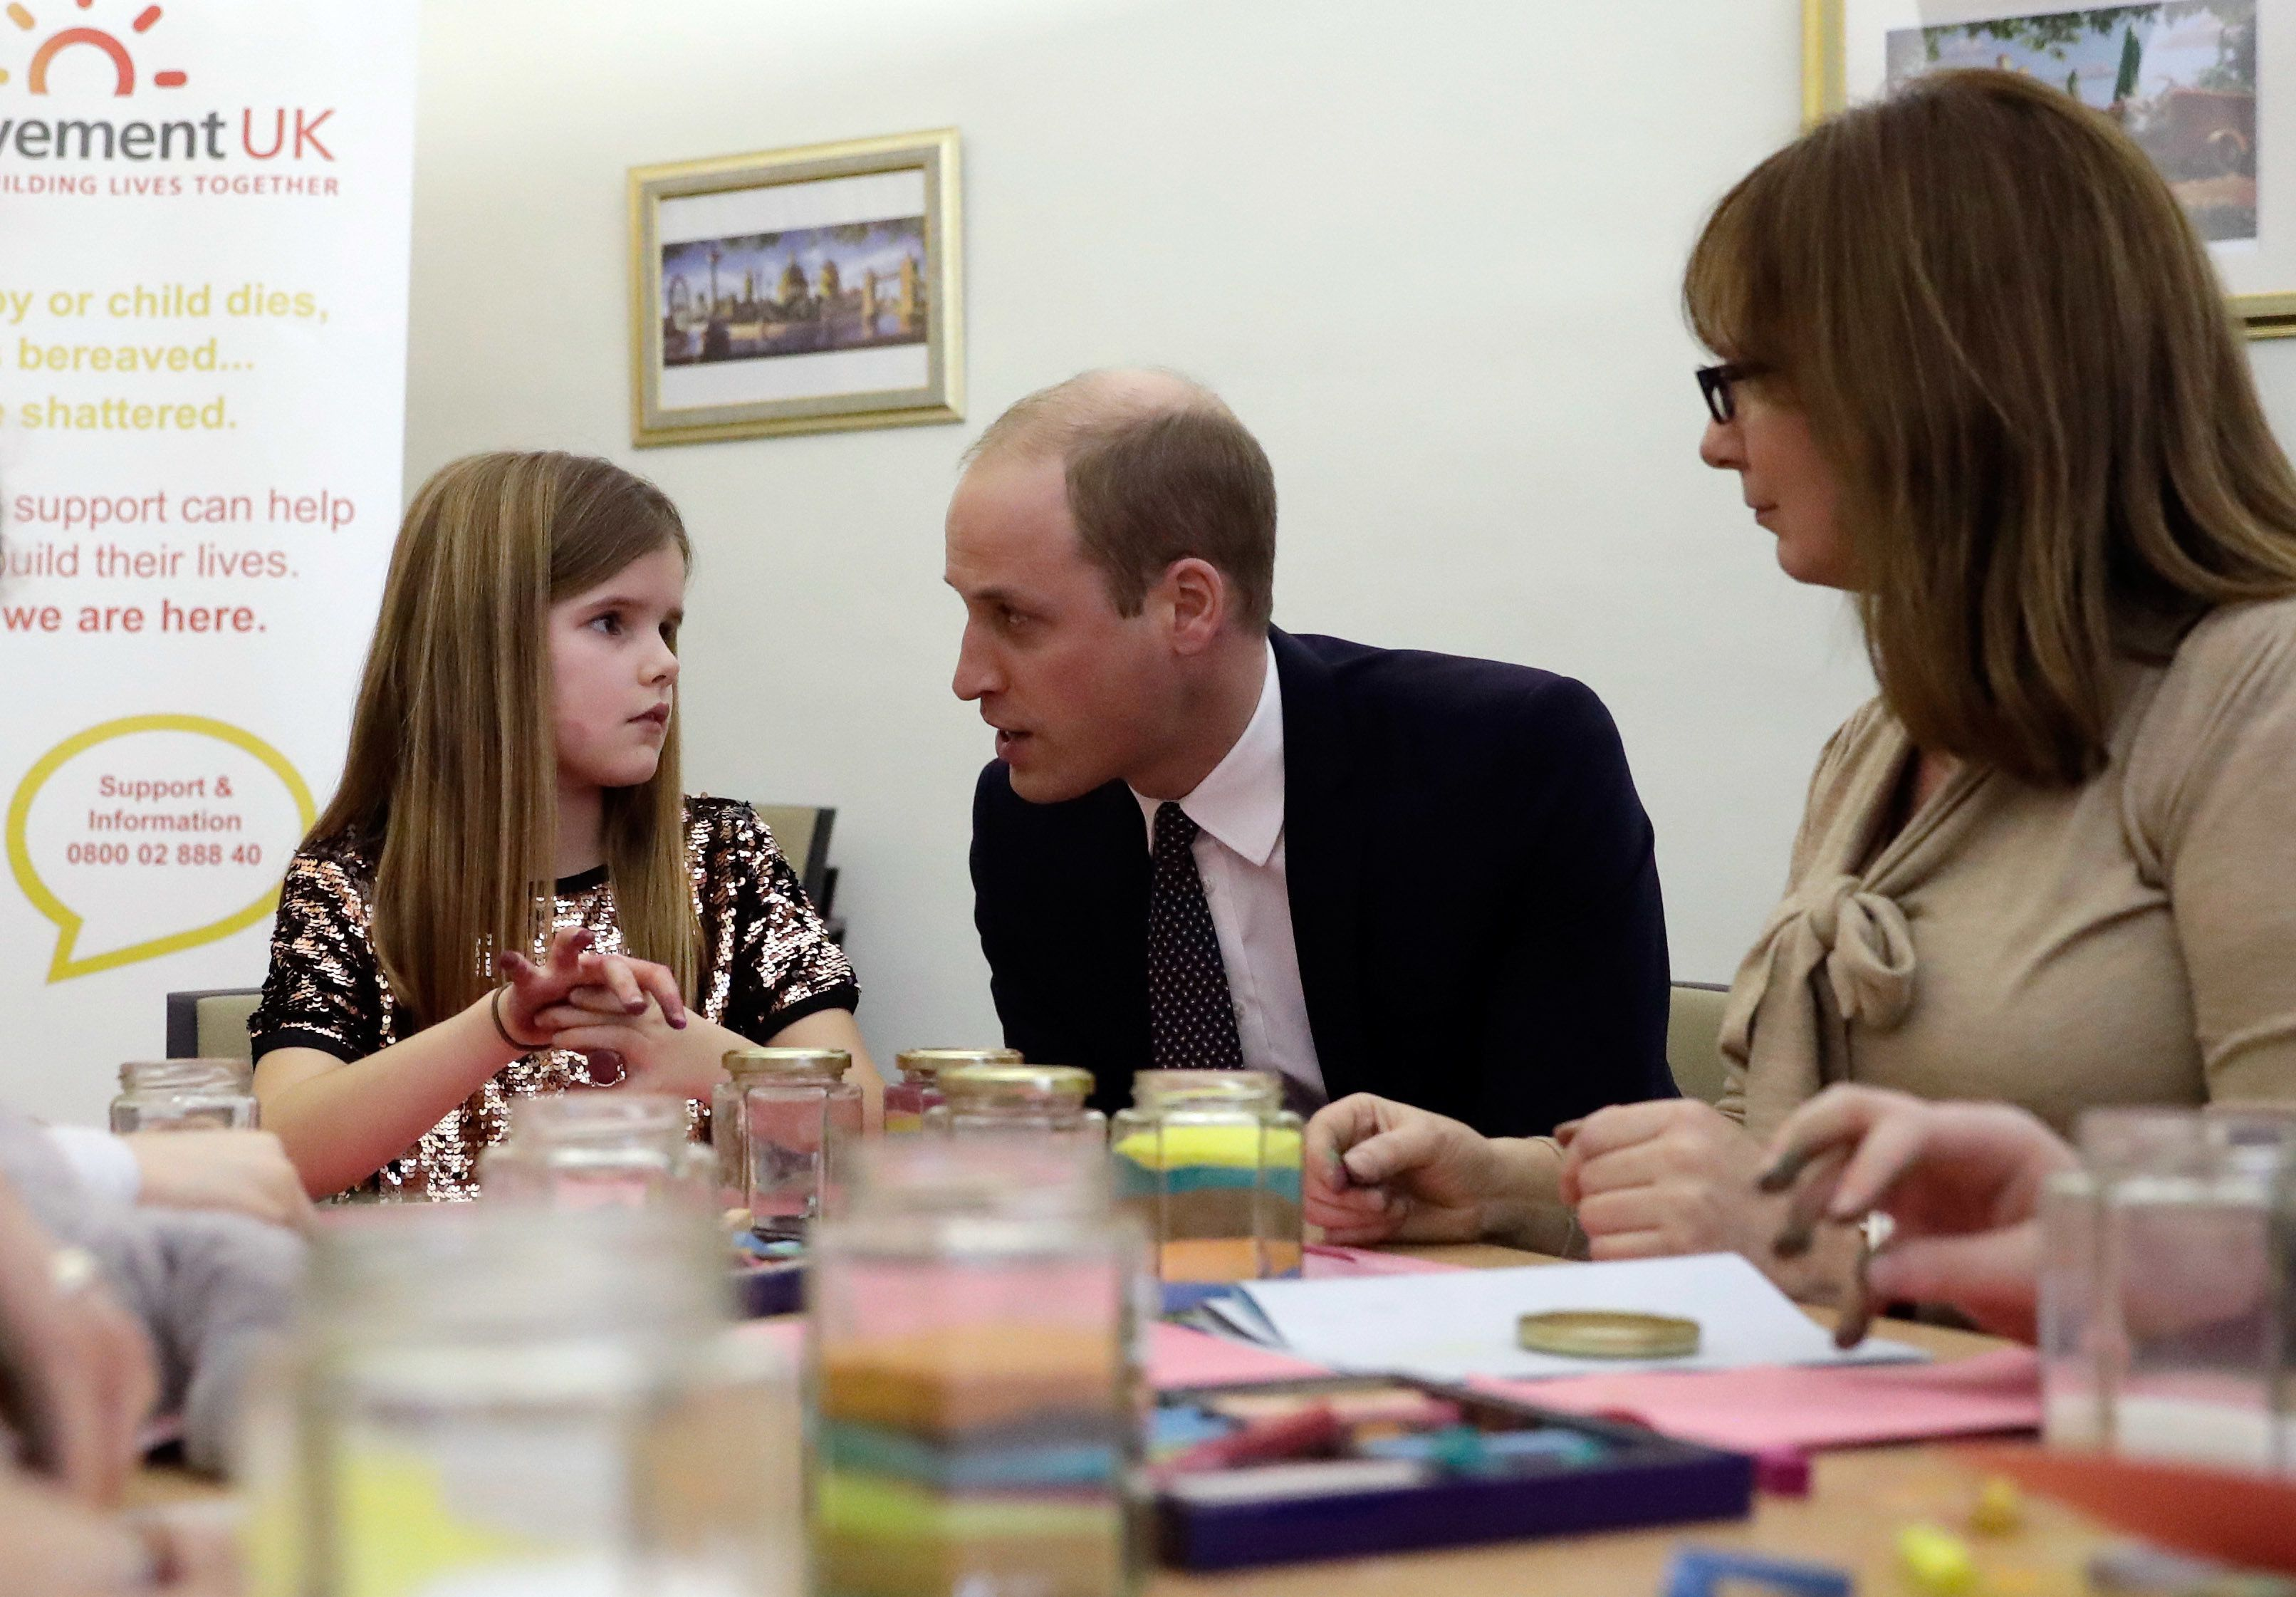 LONDON, ENGLAND - JANUARY 11: Prince William, Duke of Cambridge speaks to Aoife, 9, during his visit to a Child Bereavement UK Centre in Stratford on January 11, 2017 in London, England.  (Photo by Matt Dunham - WPA Pool/ Getty Images)